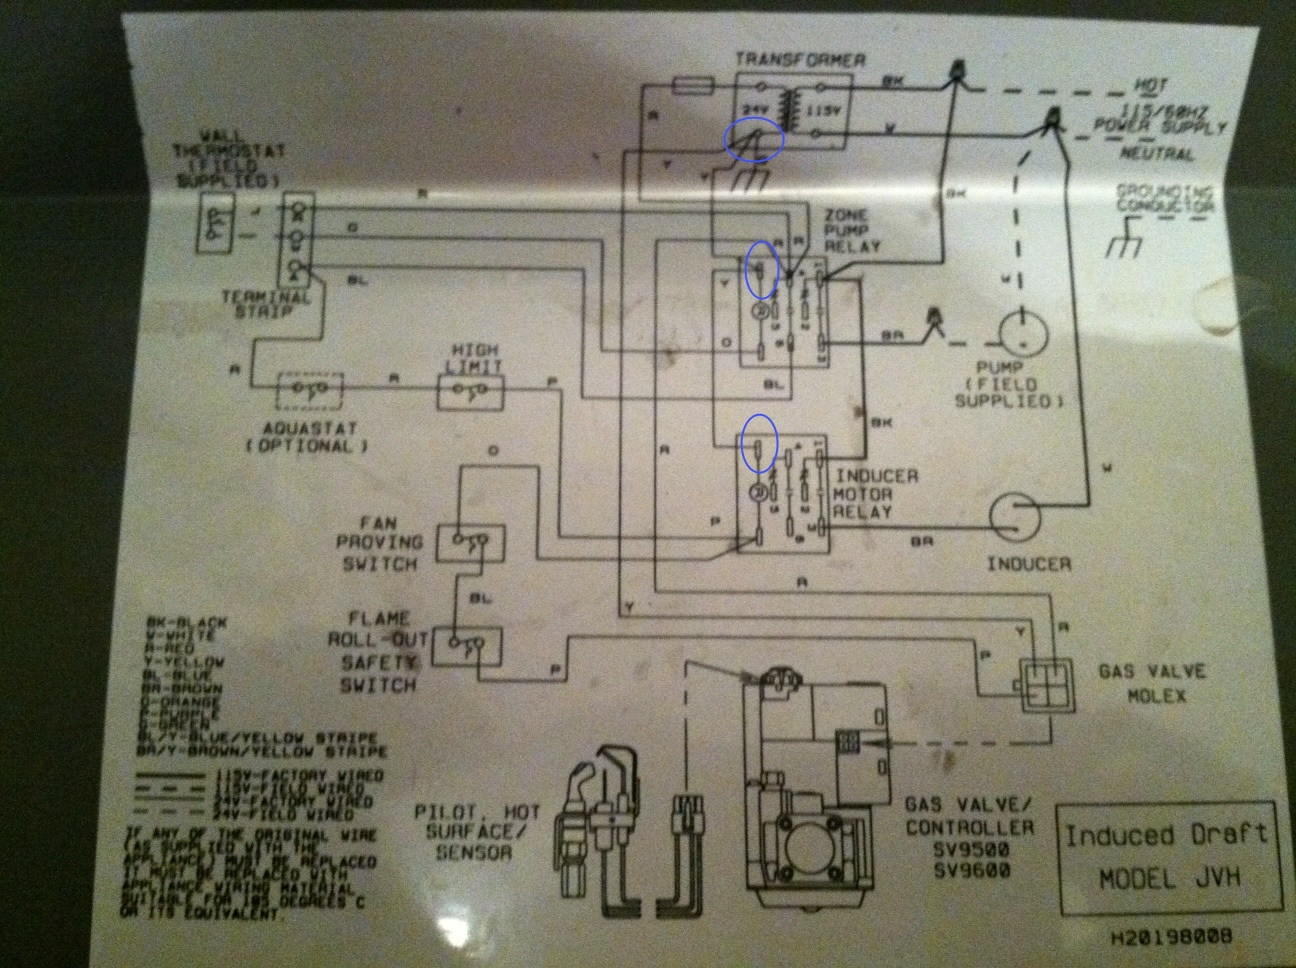 power transformer wiring diagram image 10